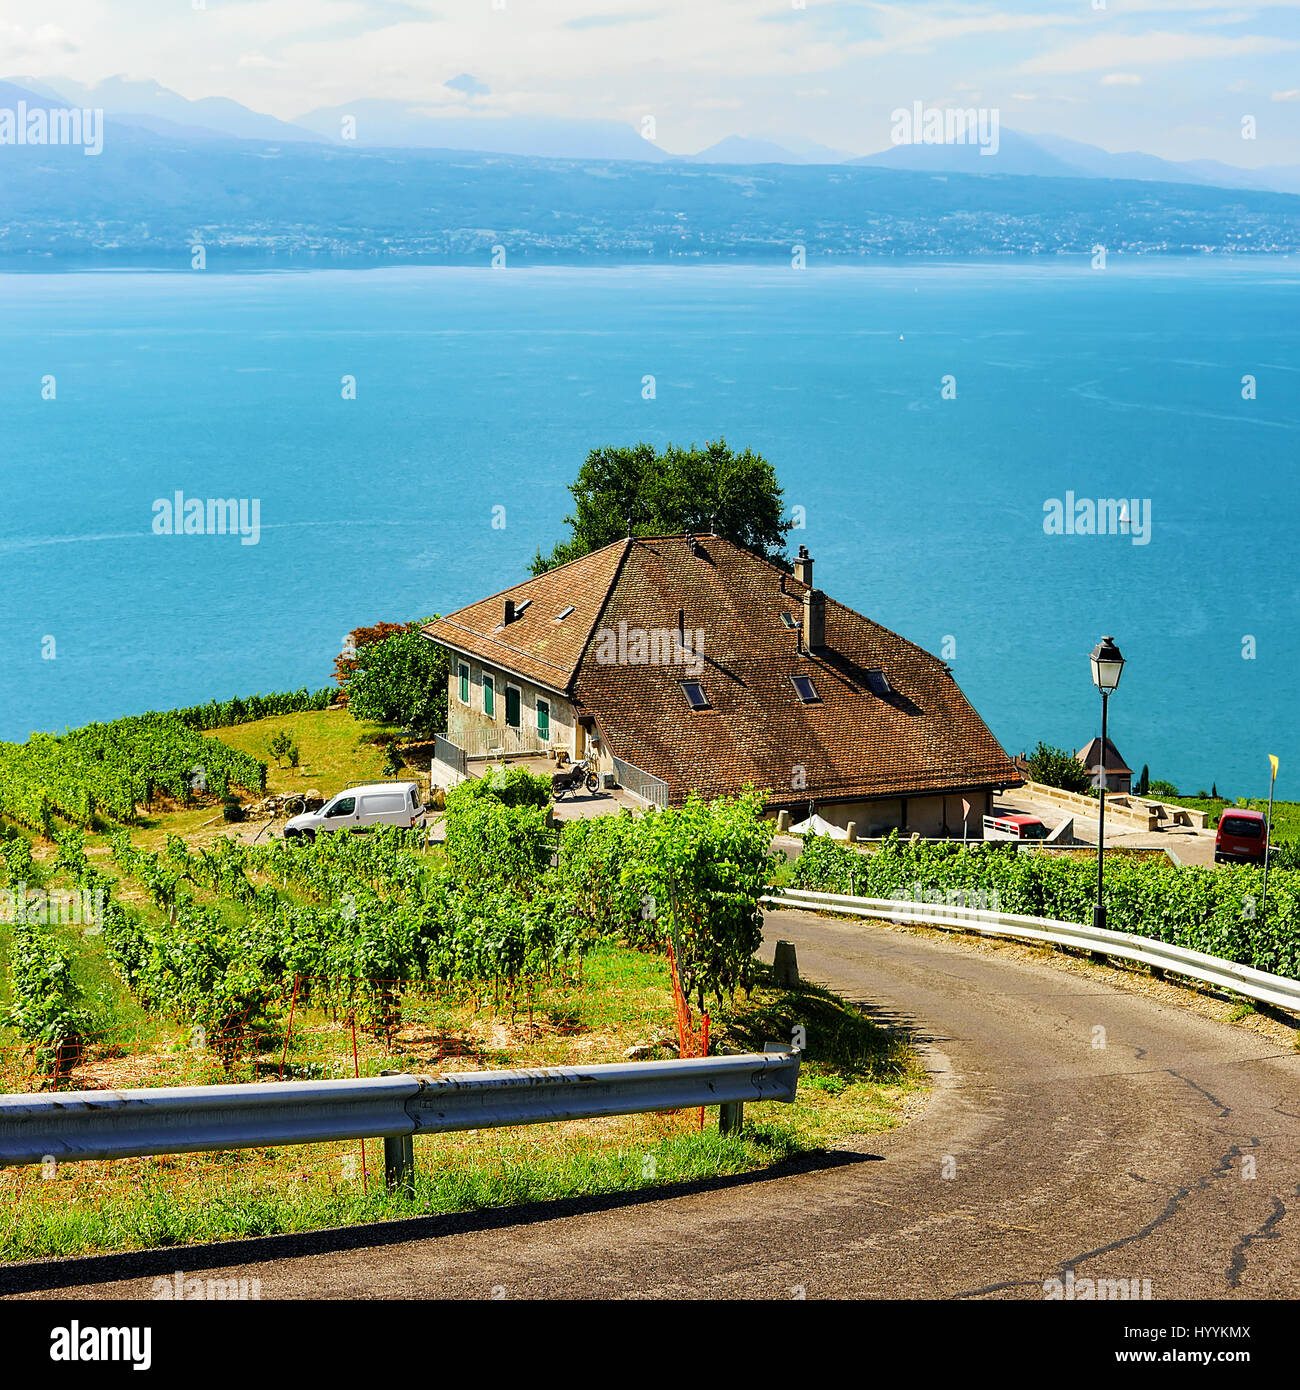 Road leading to Lavaux Vineyard Terraces hiking trail, Lake Geneva and Swiss mountains, Lavaux-Oron district, Switzerland Stock Photo